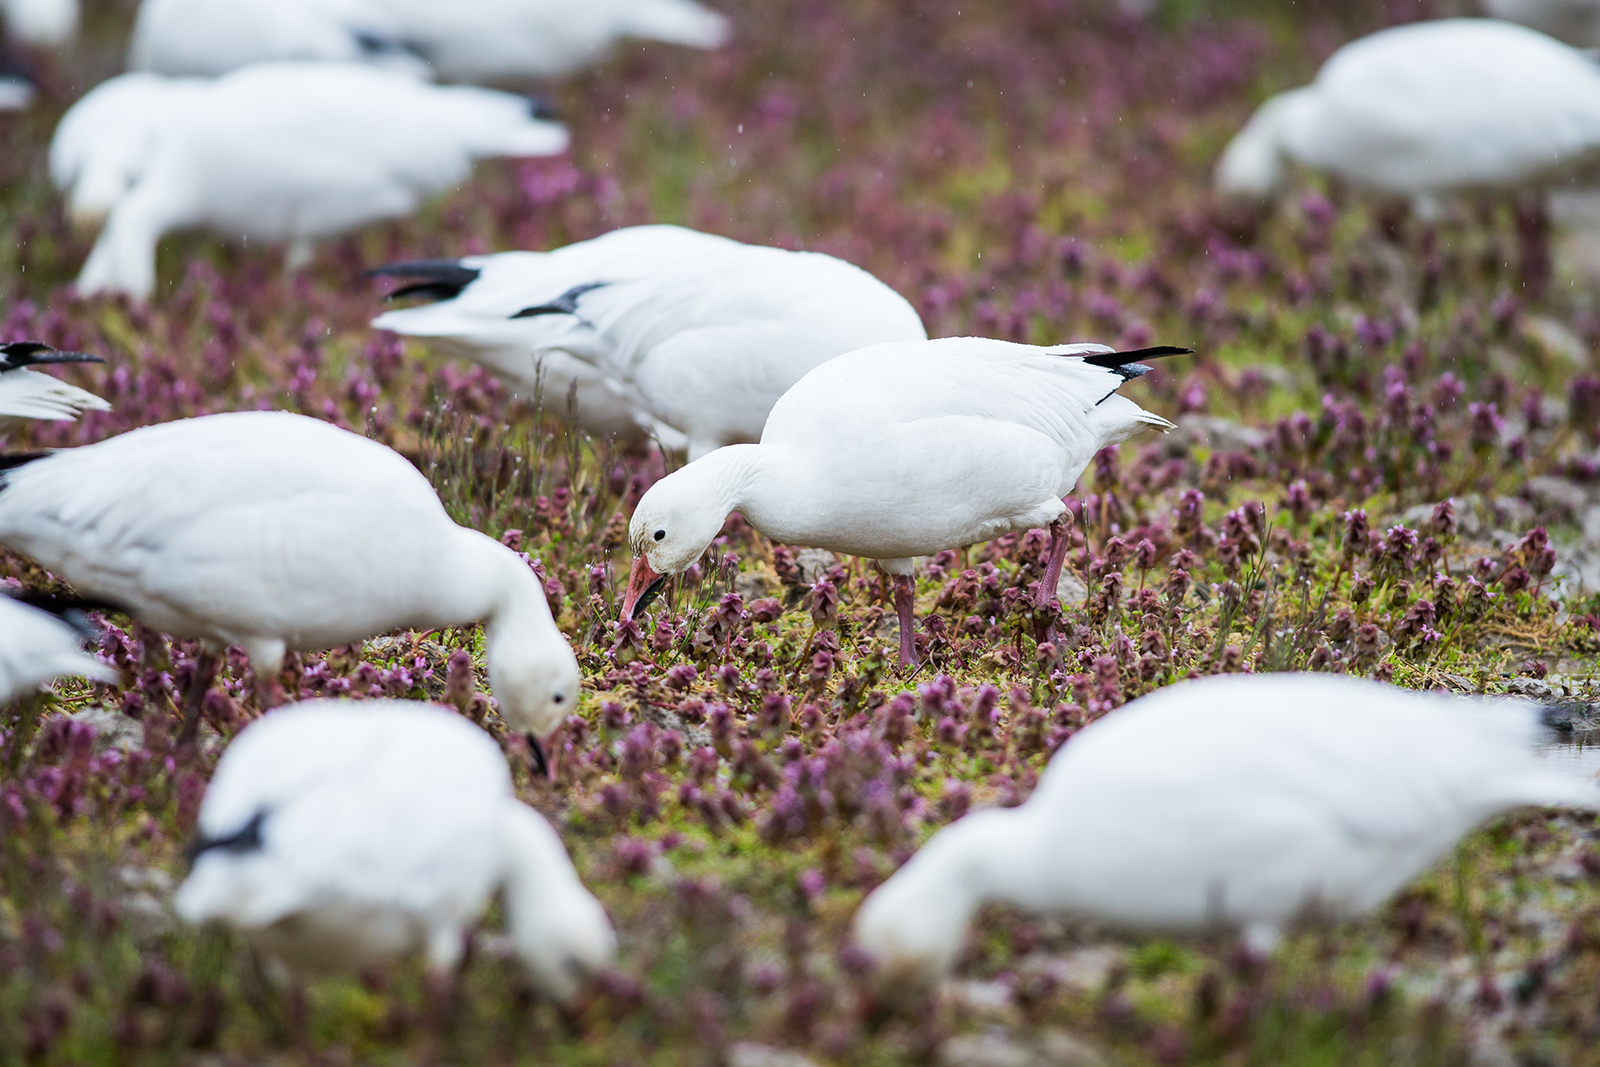 Snow geese feed in a farmers field near the Alaksen National Wildlife Area on Westham Island, British Columbia